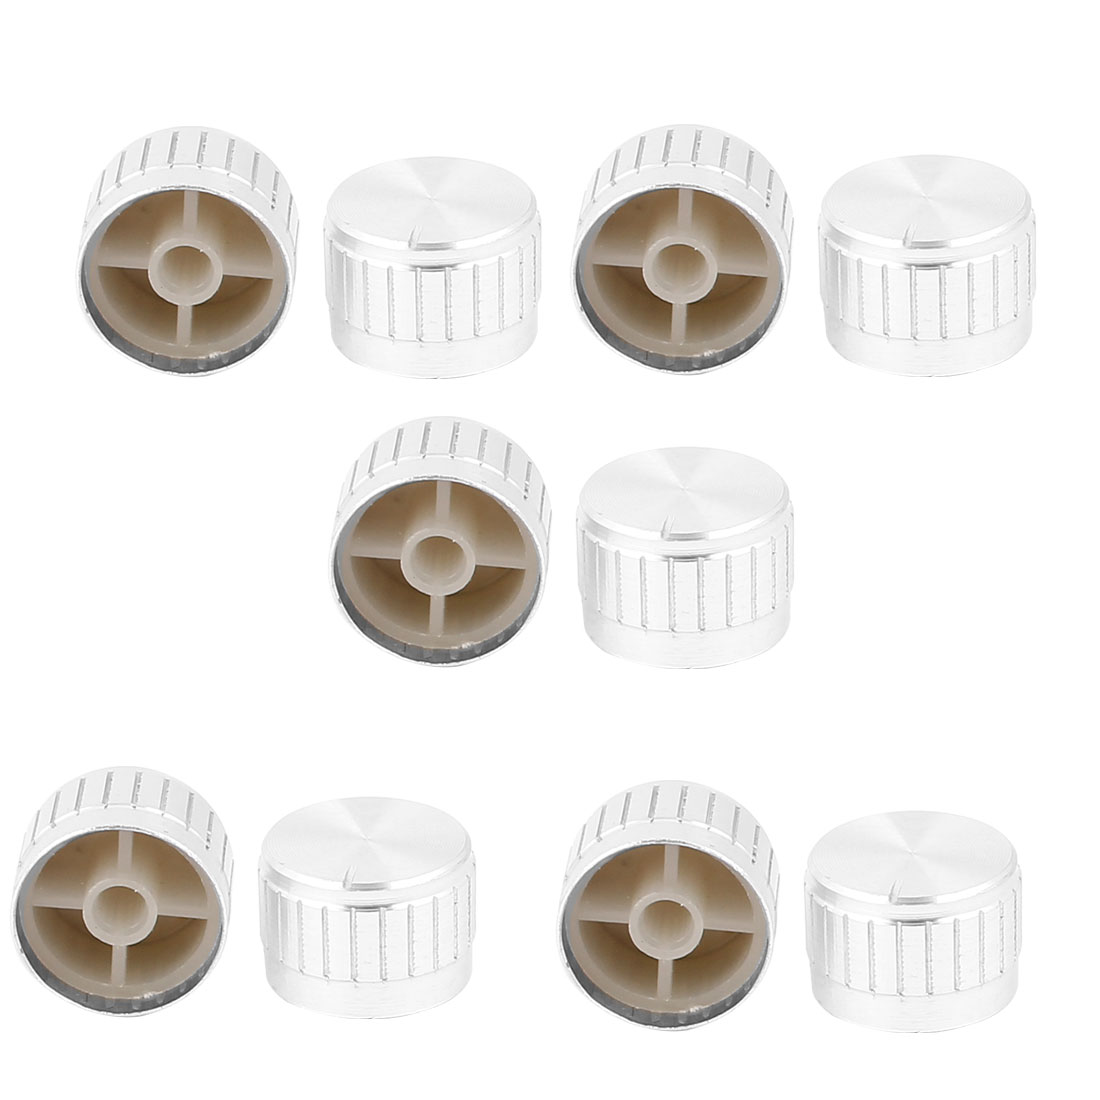 10 Pcs 26mm x 6mm Potentiometer Control Switch Volume Cap Aluminium Alloy Knurled Button Silver Tone